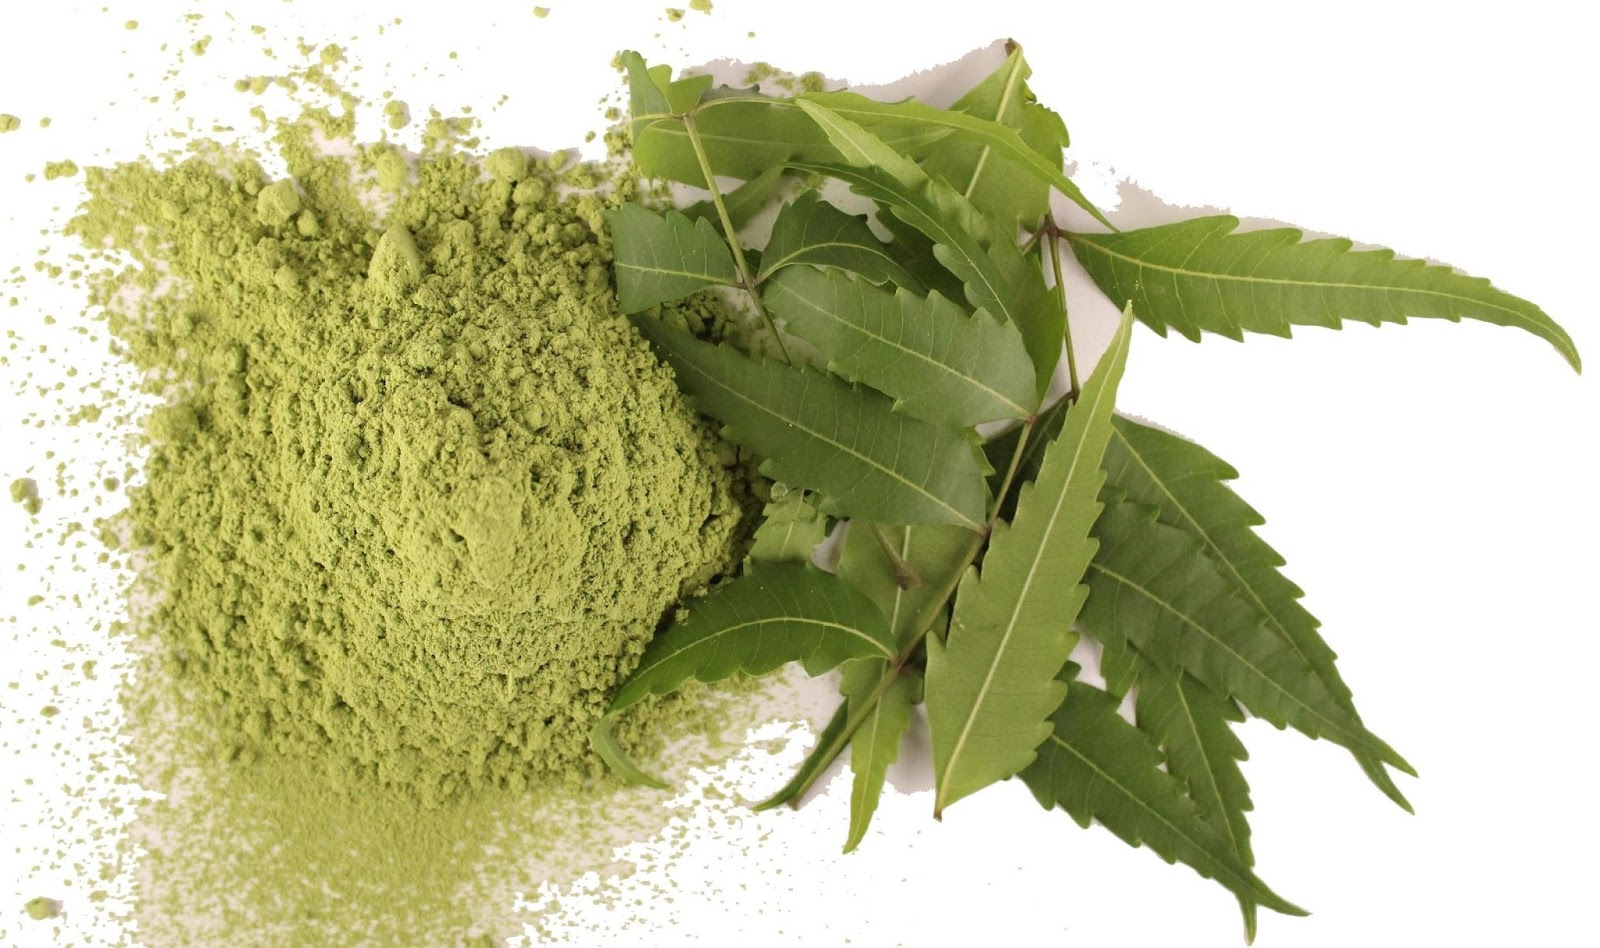 Ayurveda Herbs - Neem Leaves for Beautiful and Glowing Skin